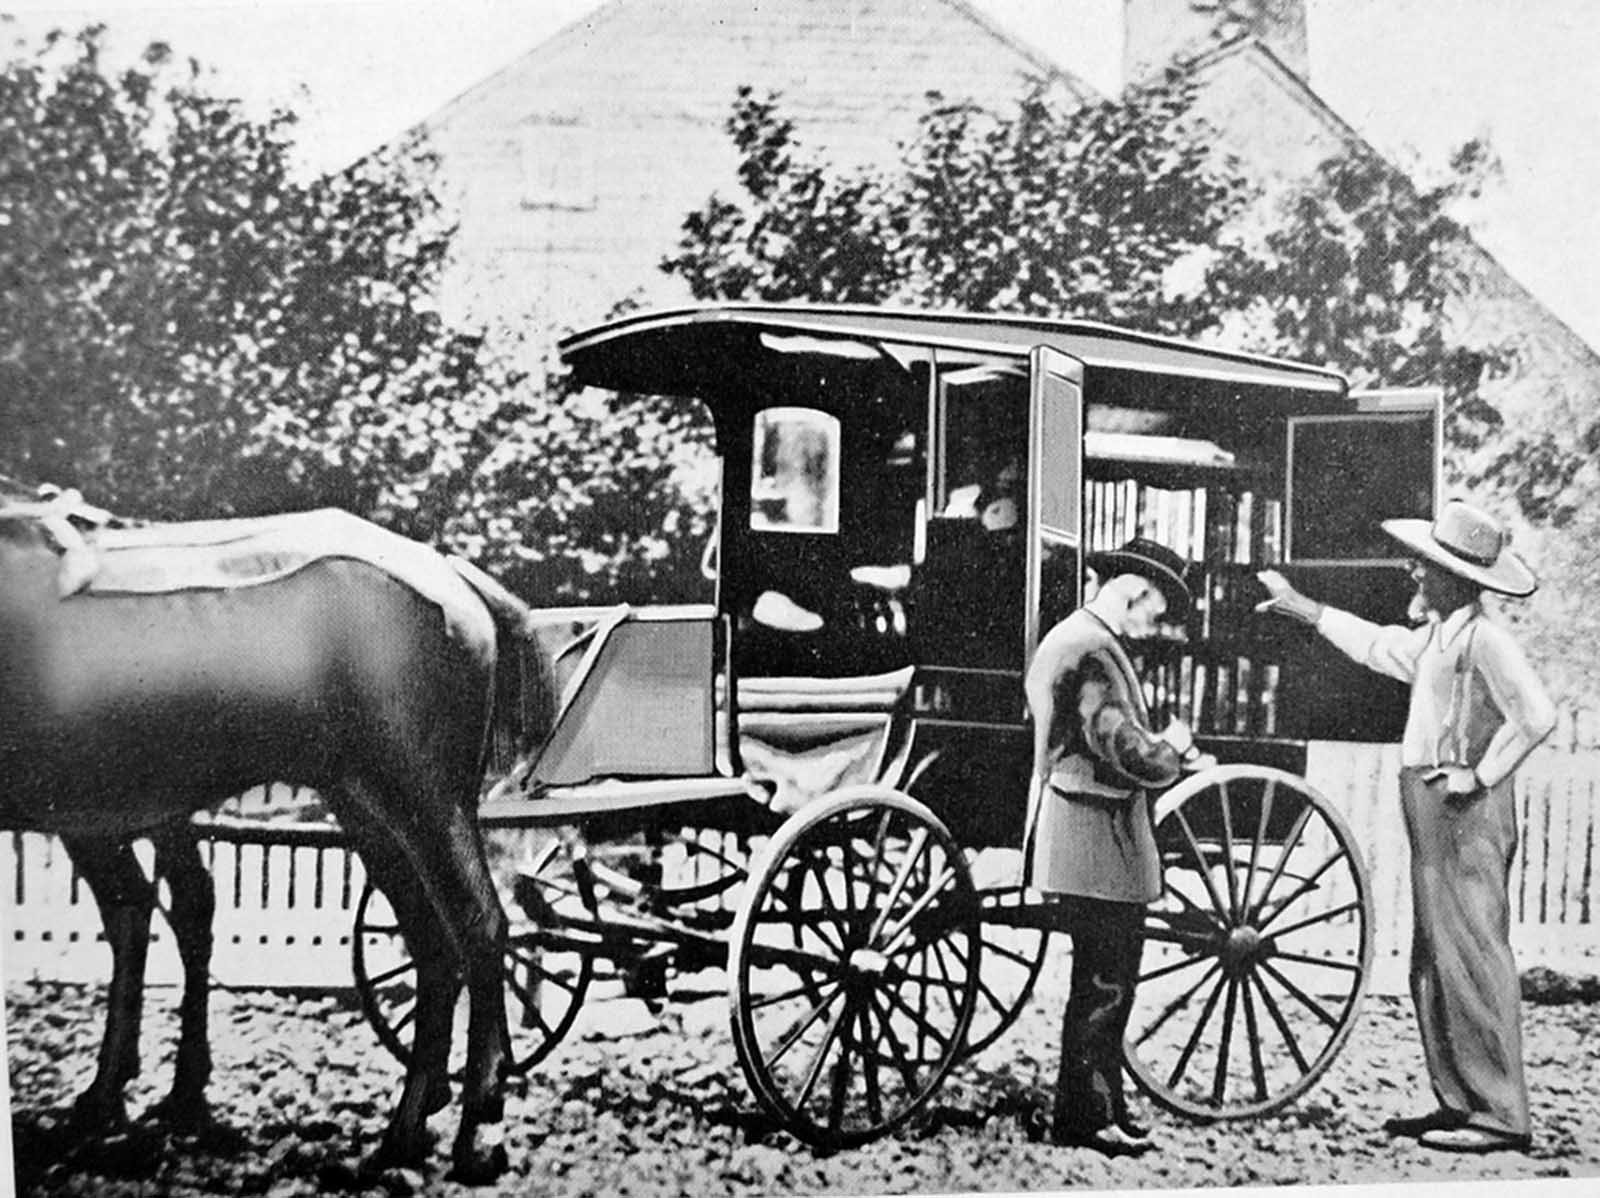 Un caballo y un carro tempranos del bookmobile en Washington D.C.